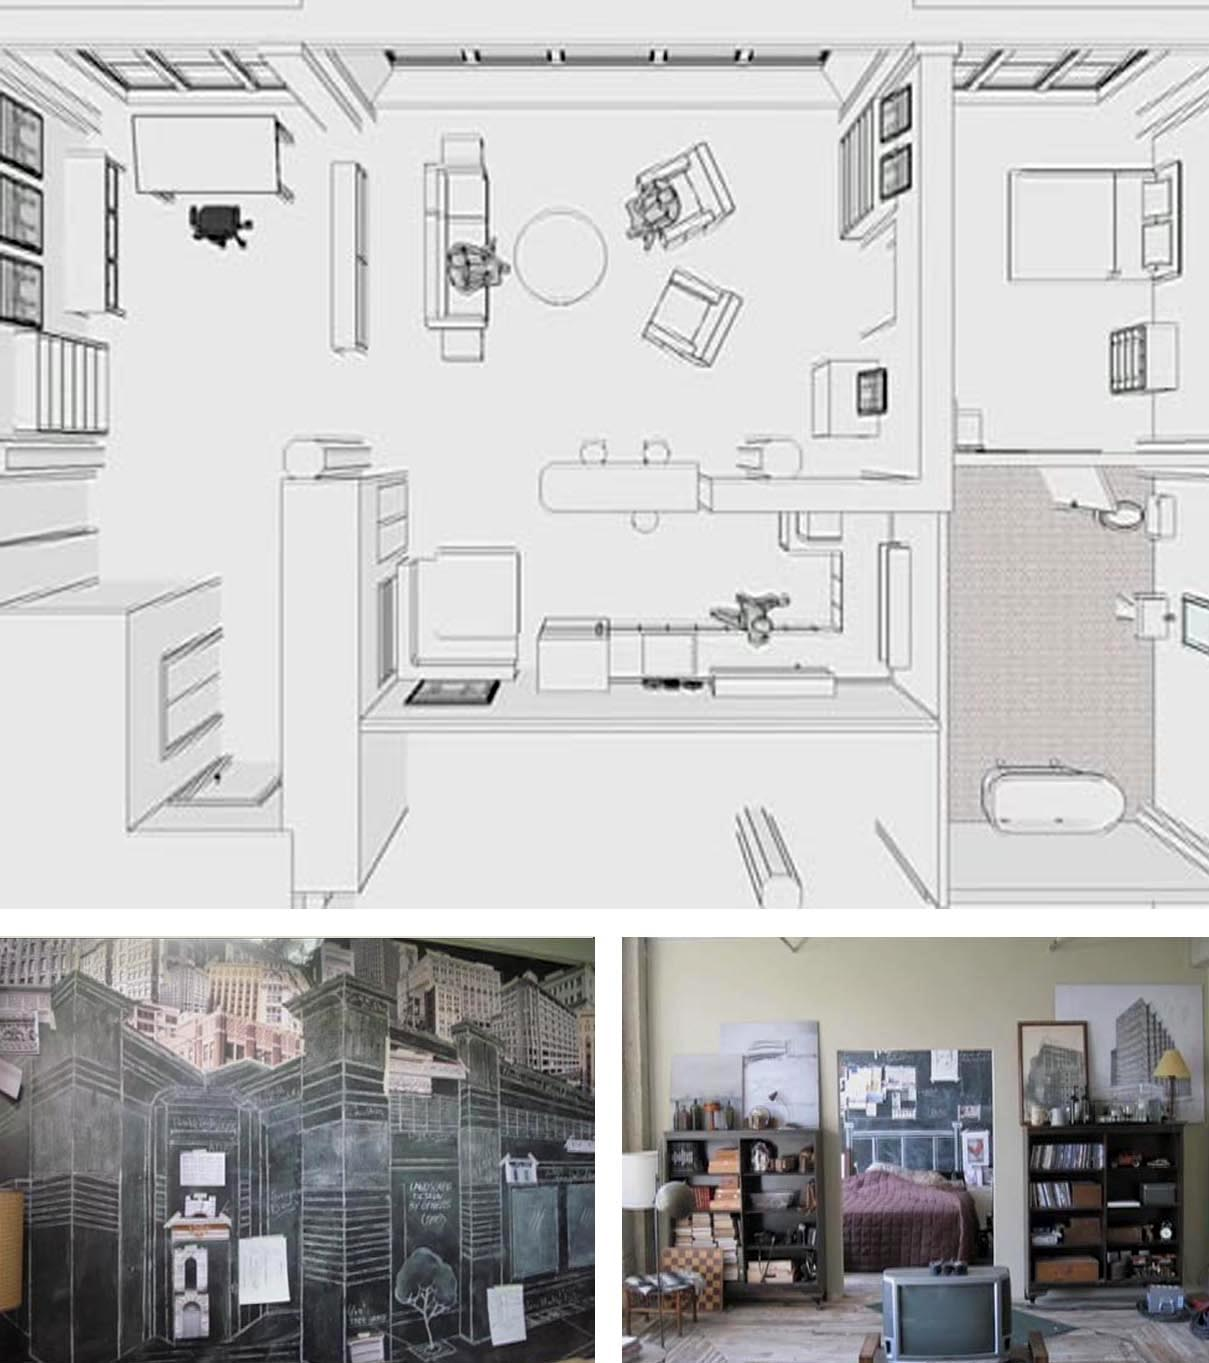 Architecture Drawing 500 Days Of Summer movie inspiration: 500 days of summer | design gourmande